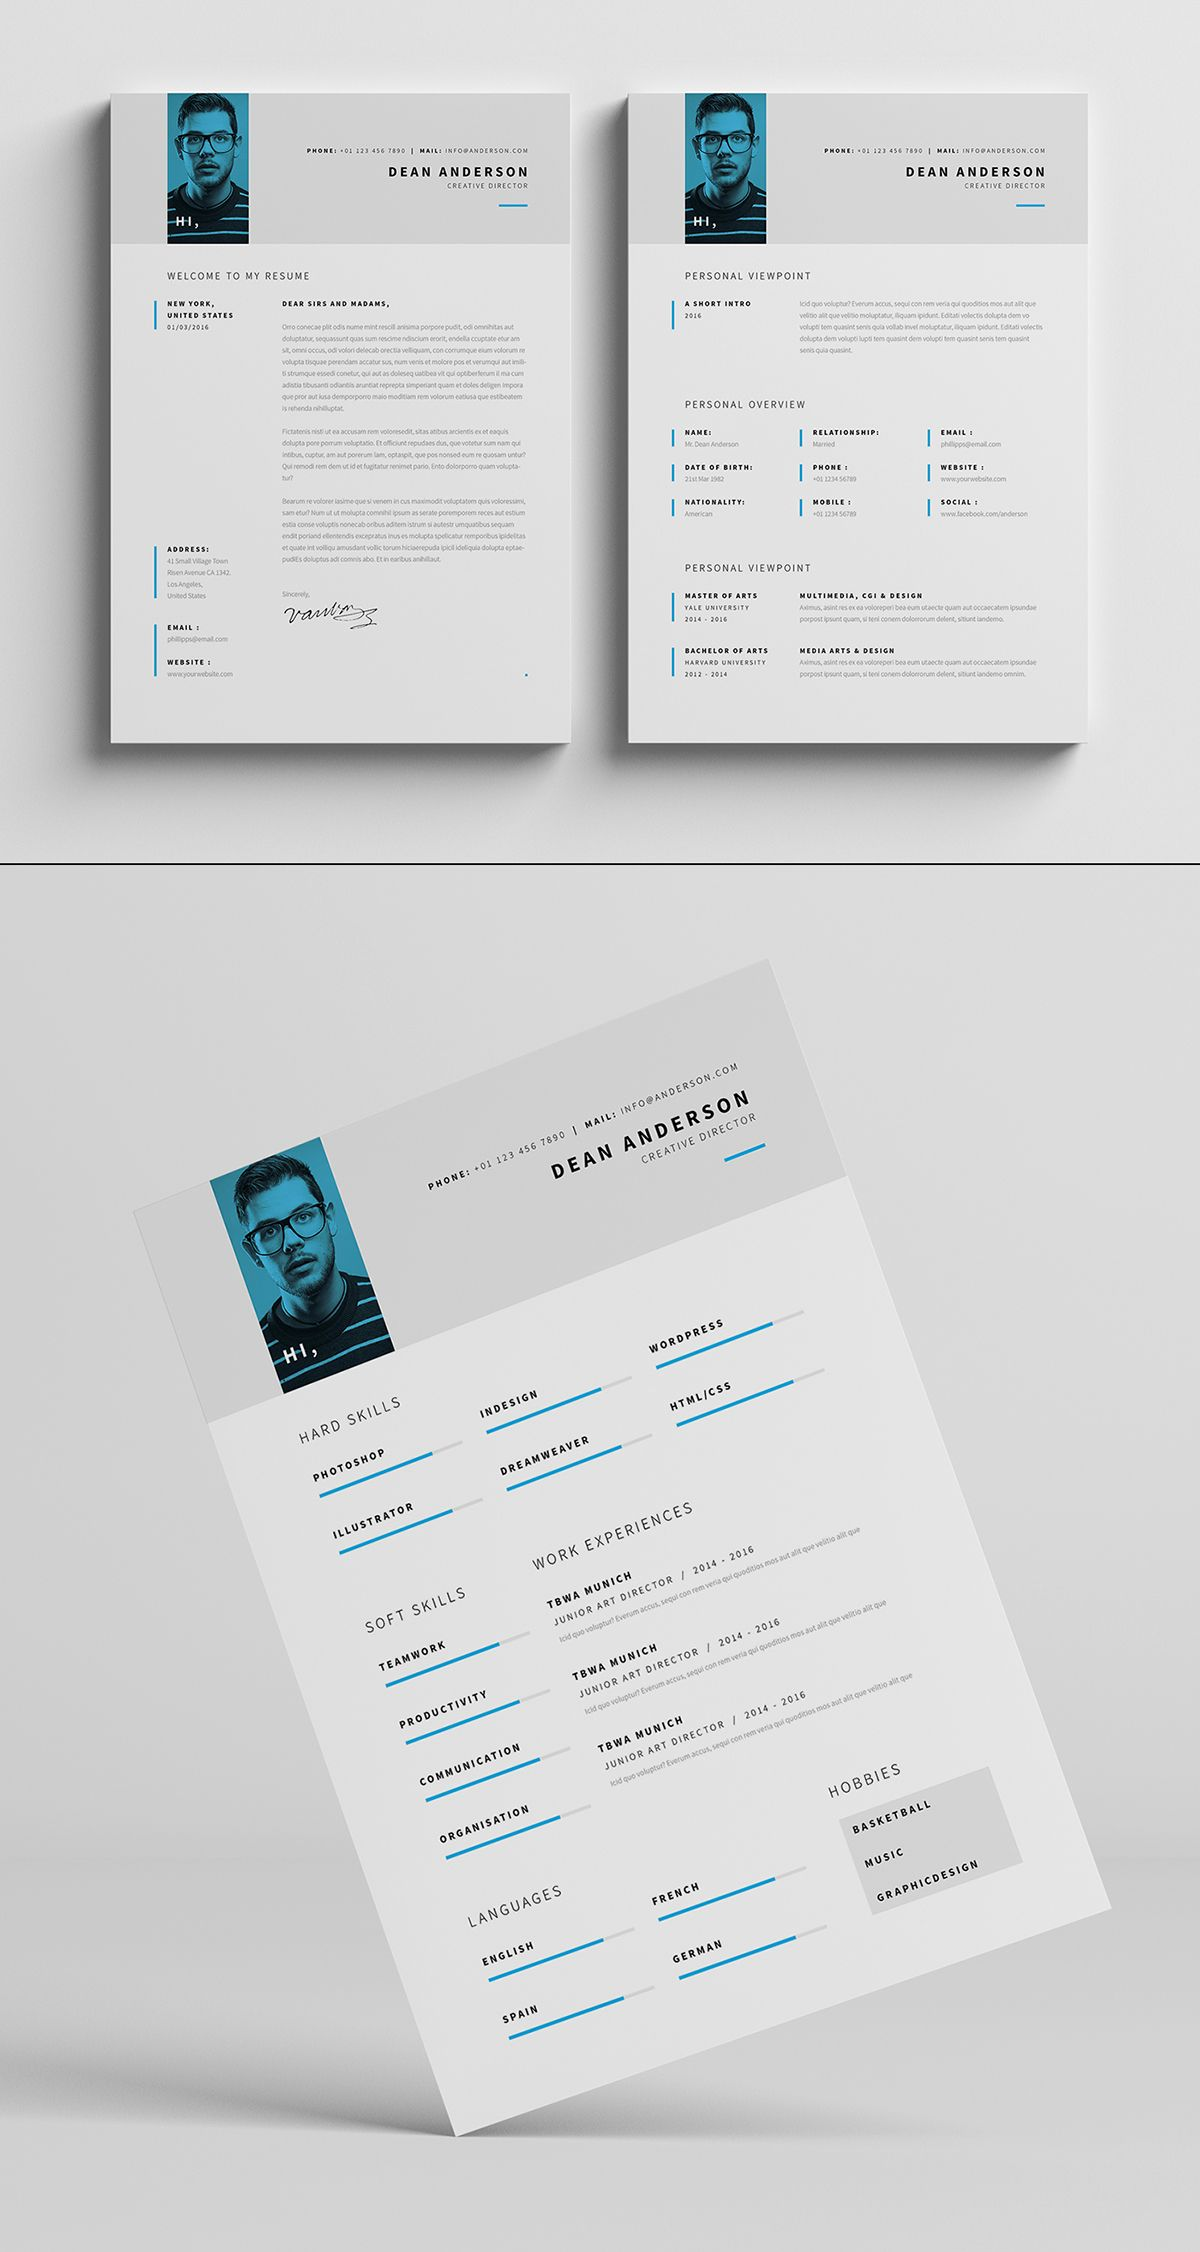 minimal resume    cv    curriculum vitae    7 pages  copy  on